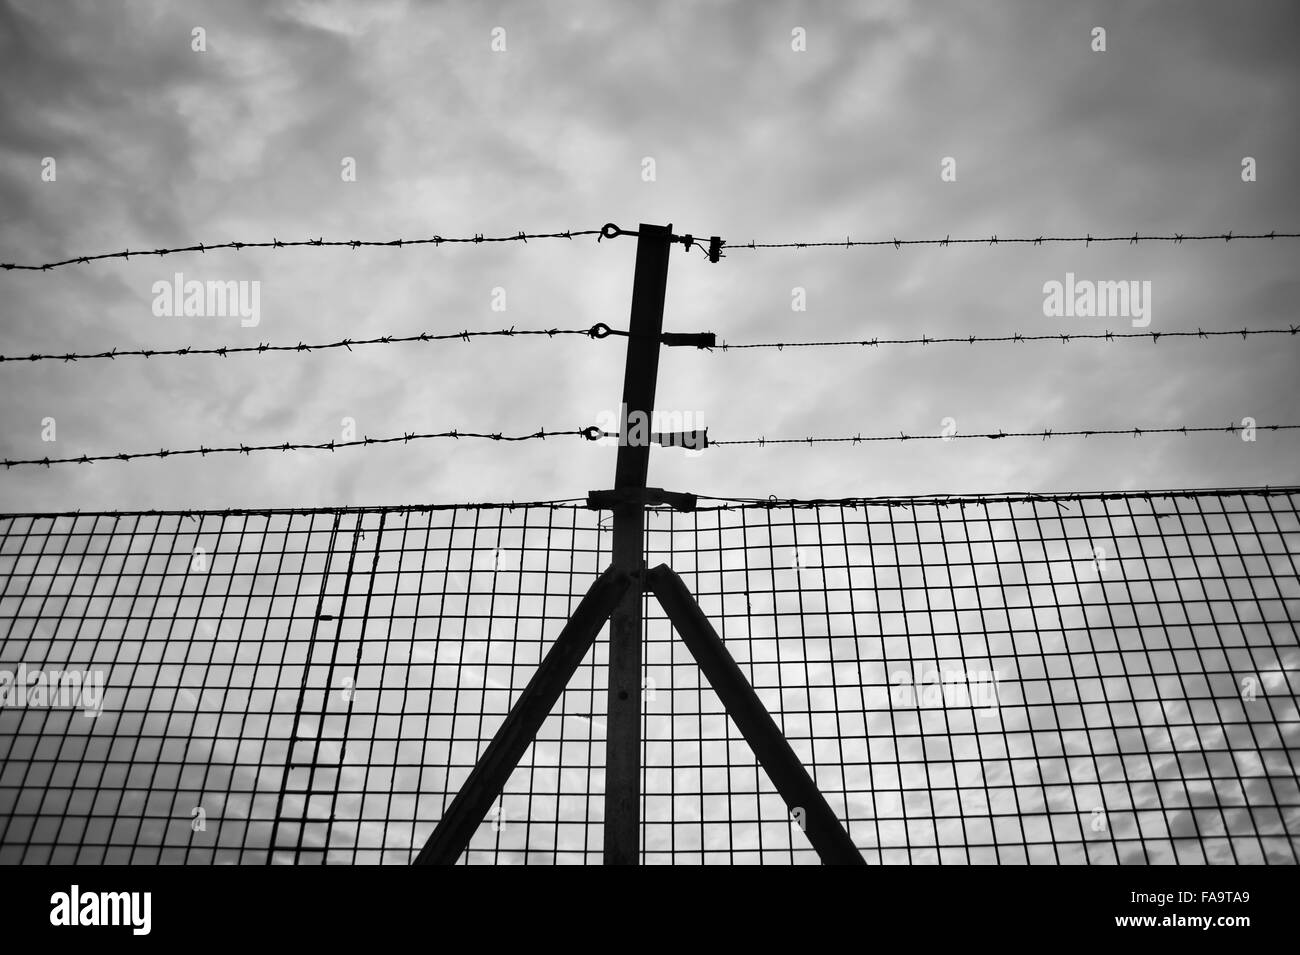 barbed wire border fence - Stock Image